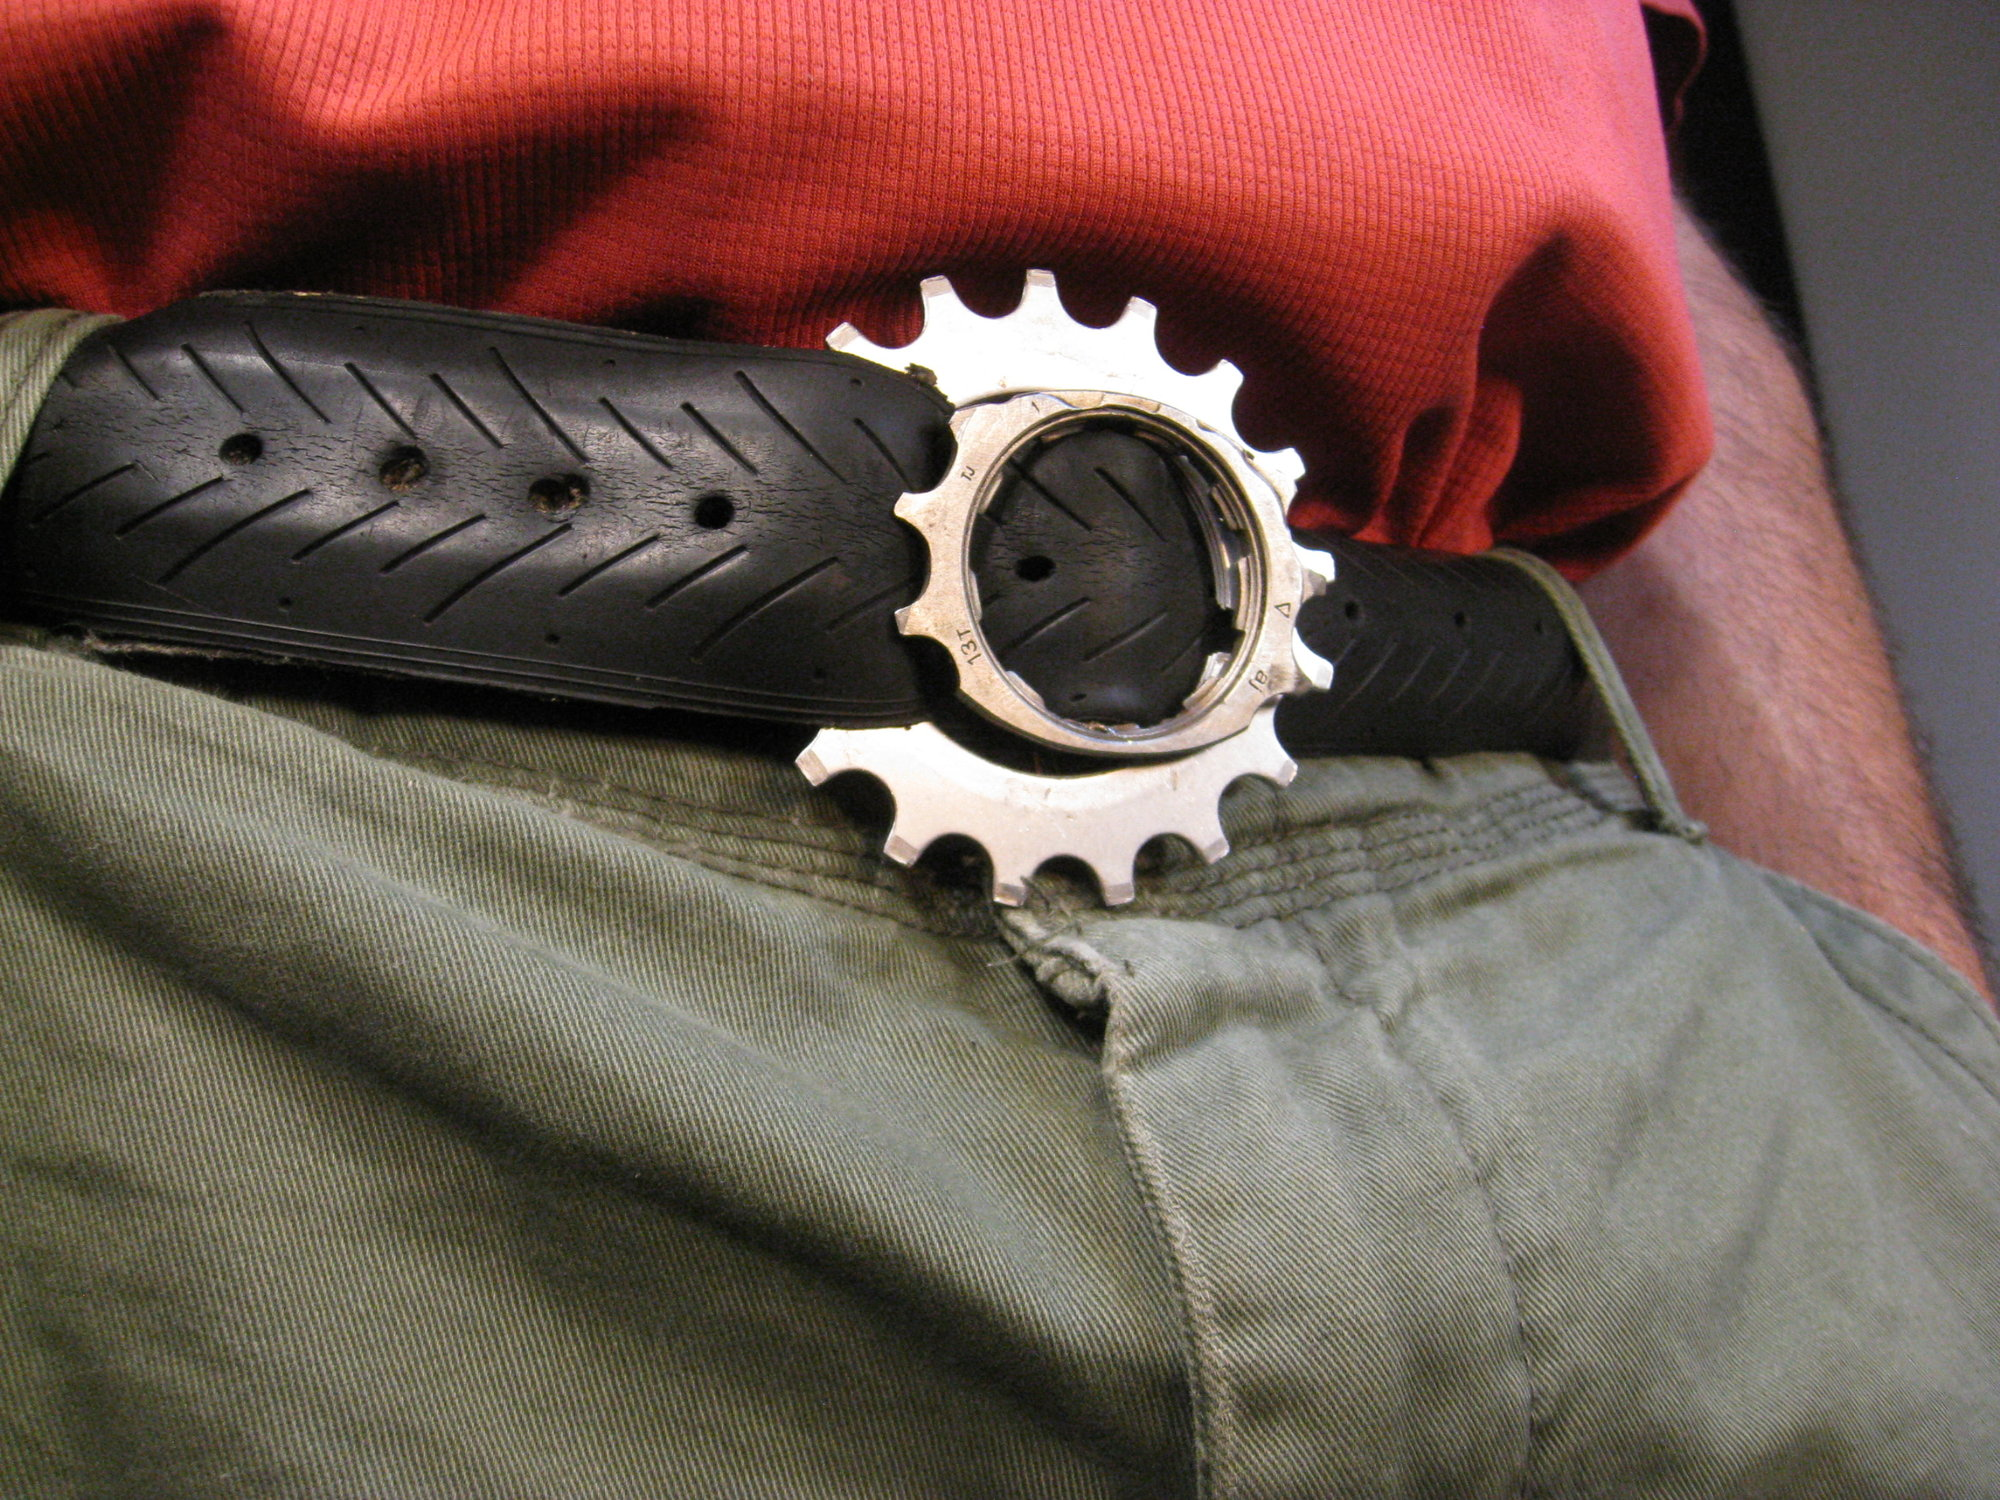 Bike Tire and Gear Belt